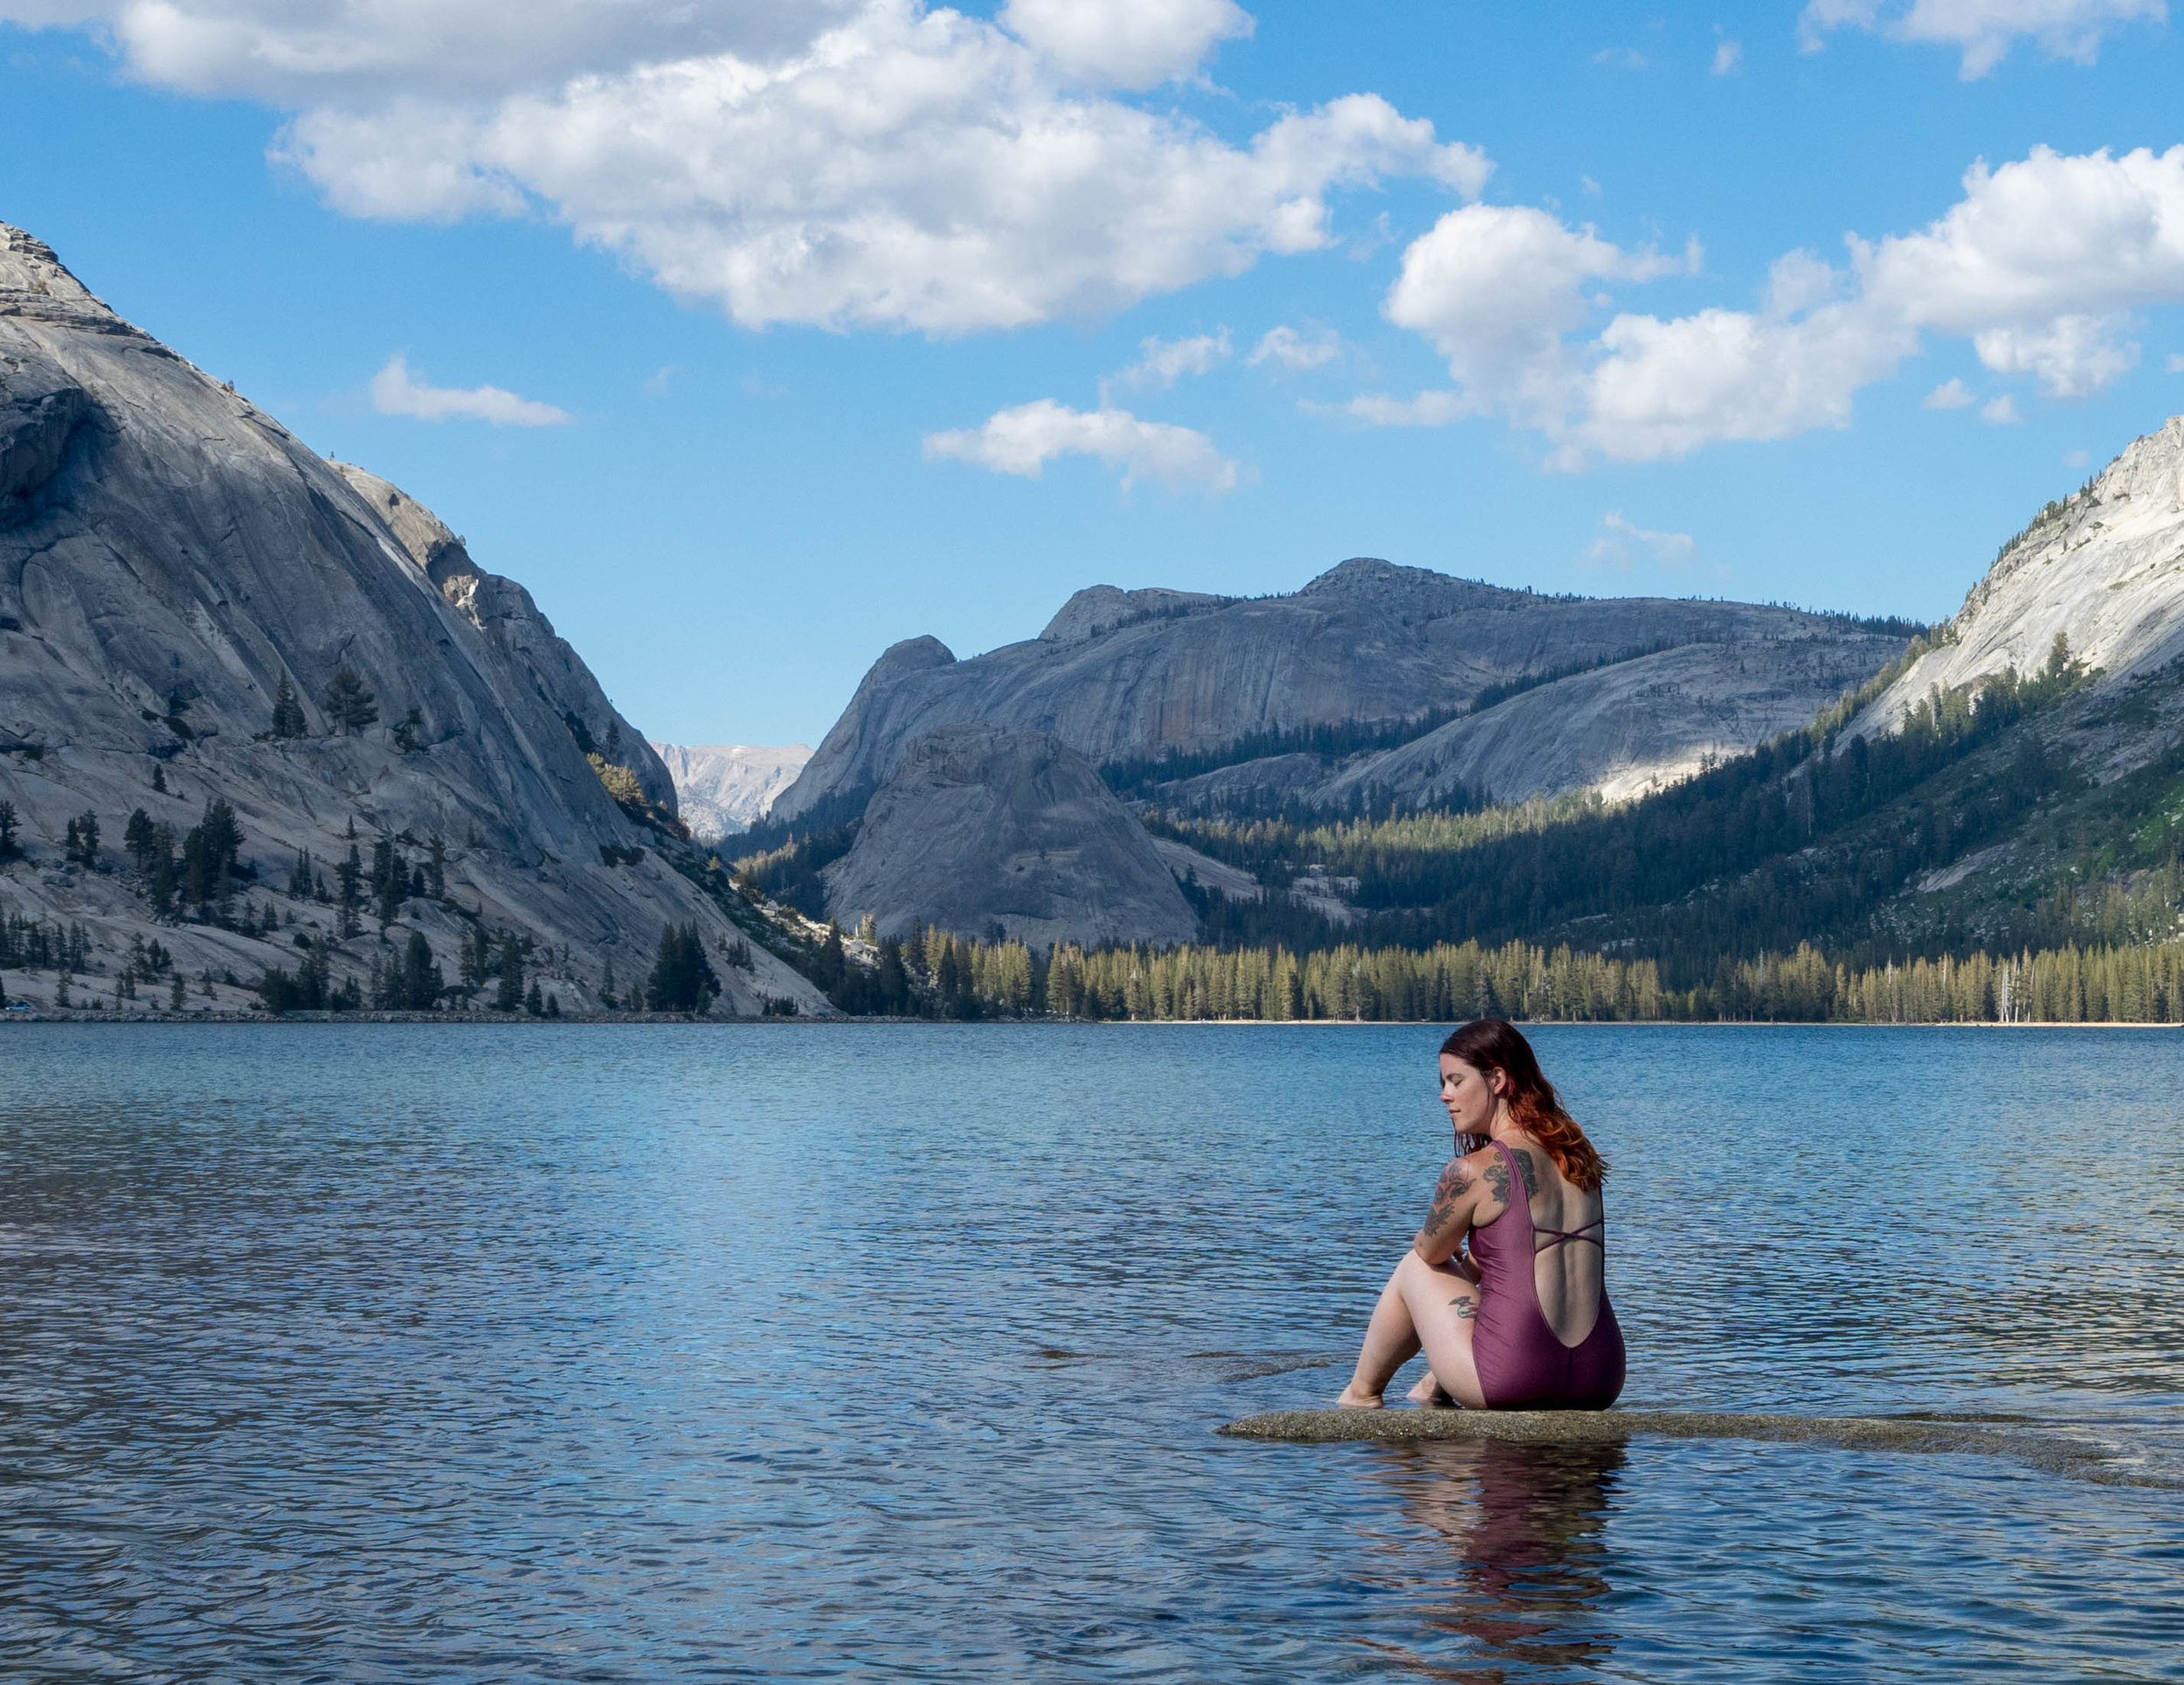 The perfect mermaid rock in the middle of Tenaya Lake!